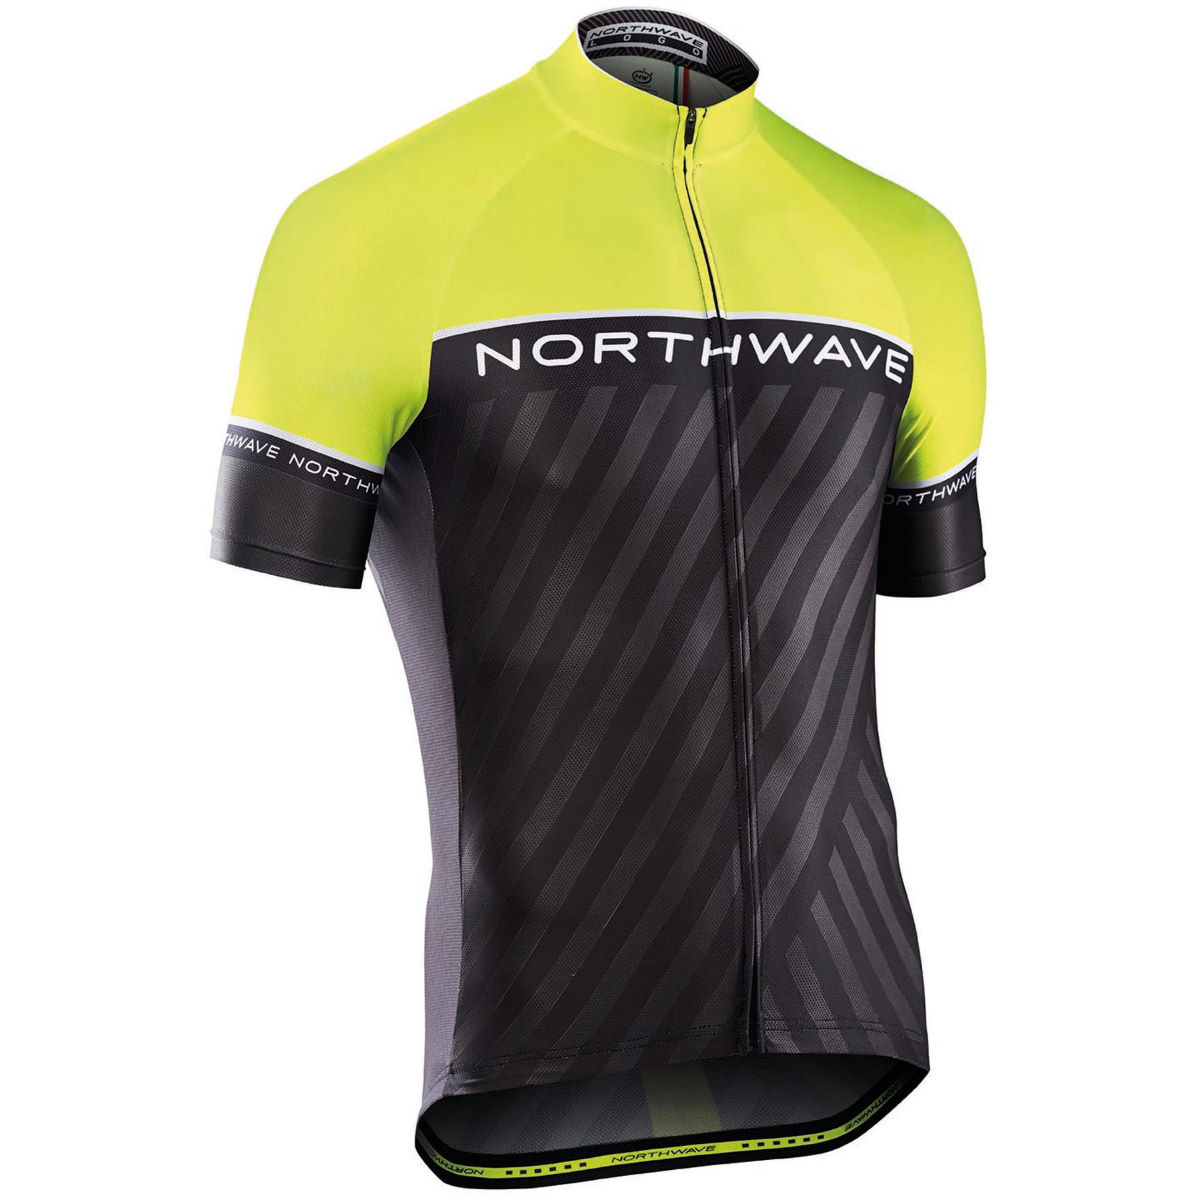 Maillot Enfant Northwave Logo 3 (manches courtes) - 5-6 years